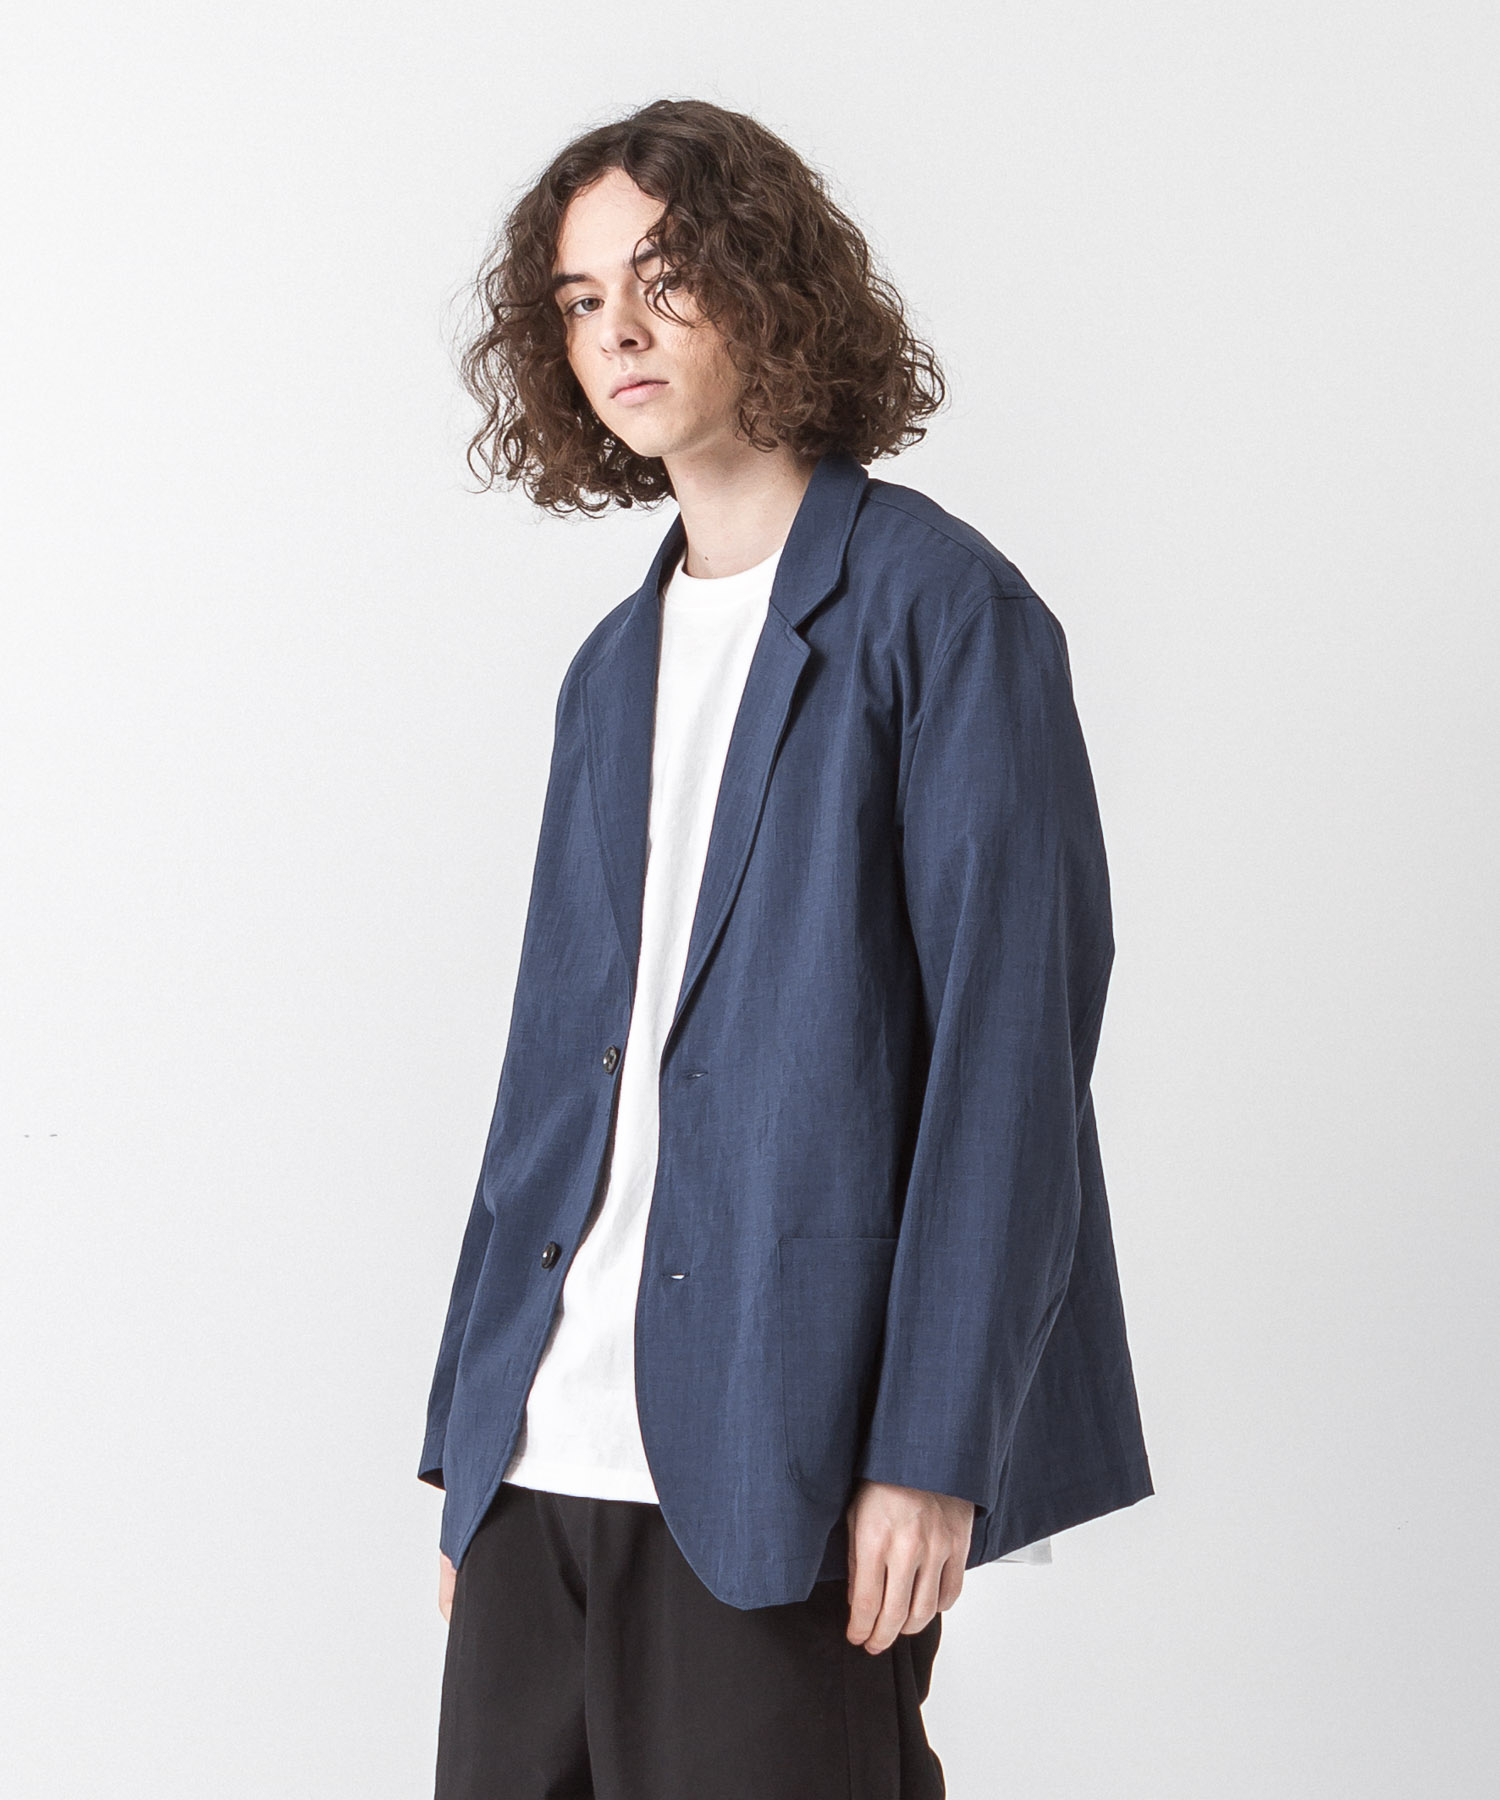 EVALET Thick&Thin Tailored Jacket - NAVY